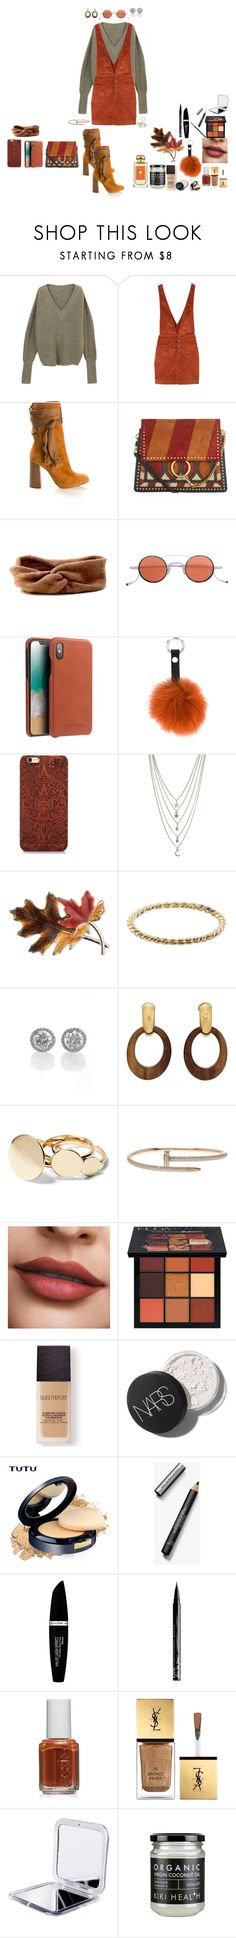 """""""oranigbrowndressthing=)"""" by manonth on Polyvore featuring mode, Free People, Chloé, Jacques Marie Mage, Guild Prime, Ettika, Anne Klein, Luna Skye, Goossens en Huda Beauty"""